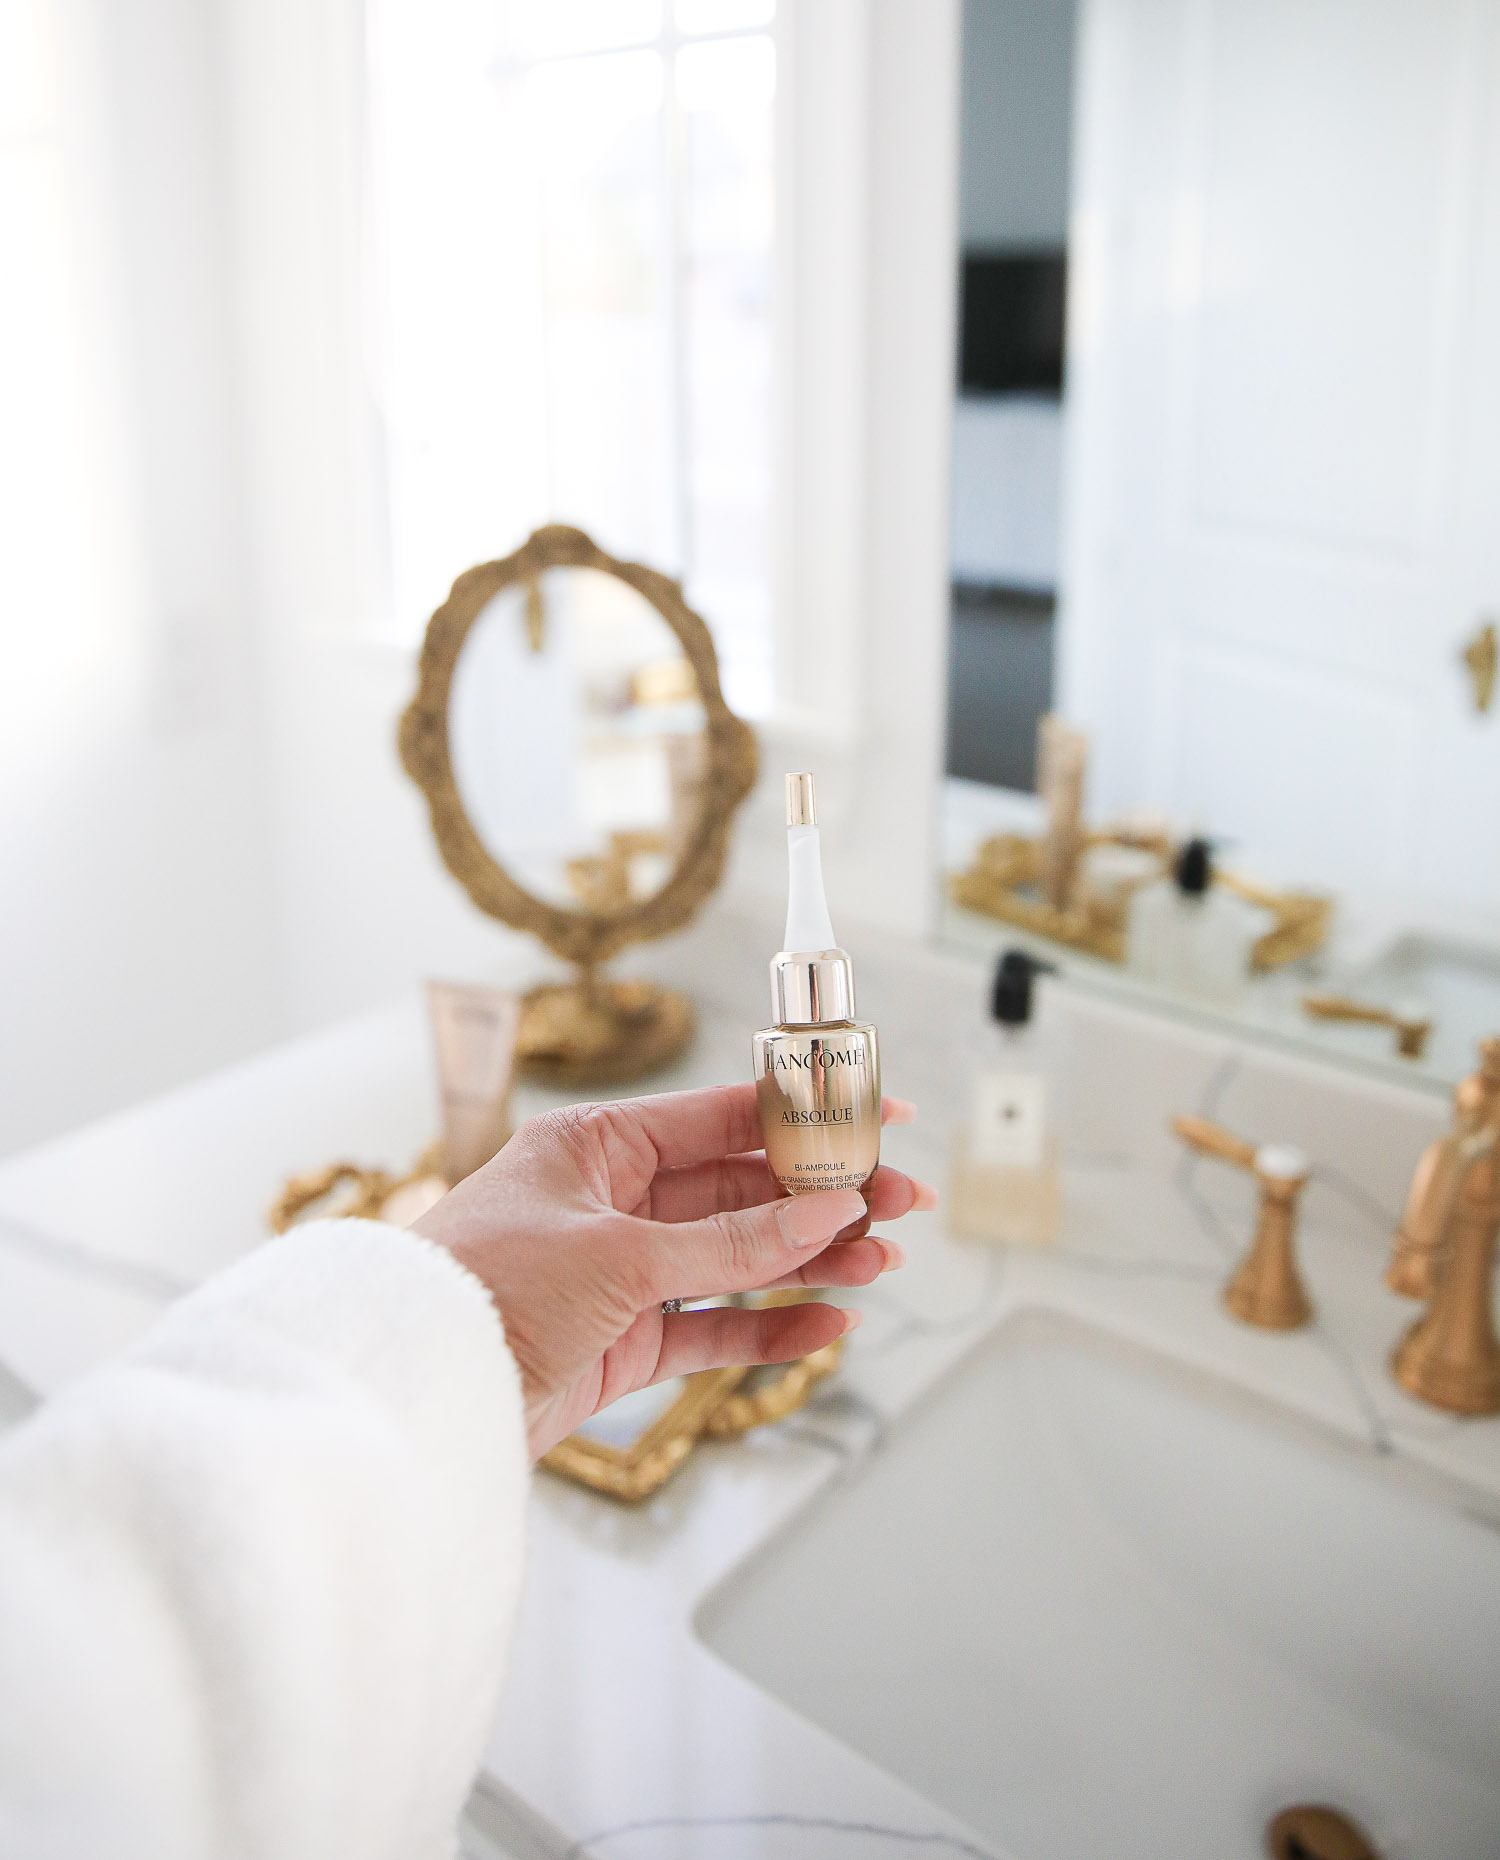 Lancome Skincare by popular US beauty blog, The Sweetest Thing: image of Emily Gemma holding a Lancome Absolue skincare product.